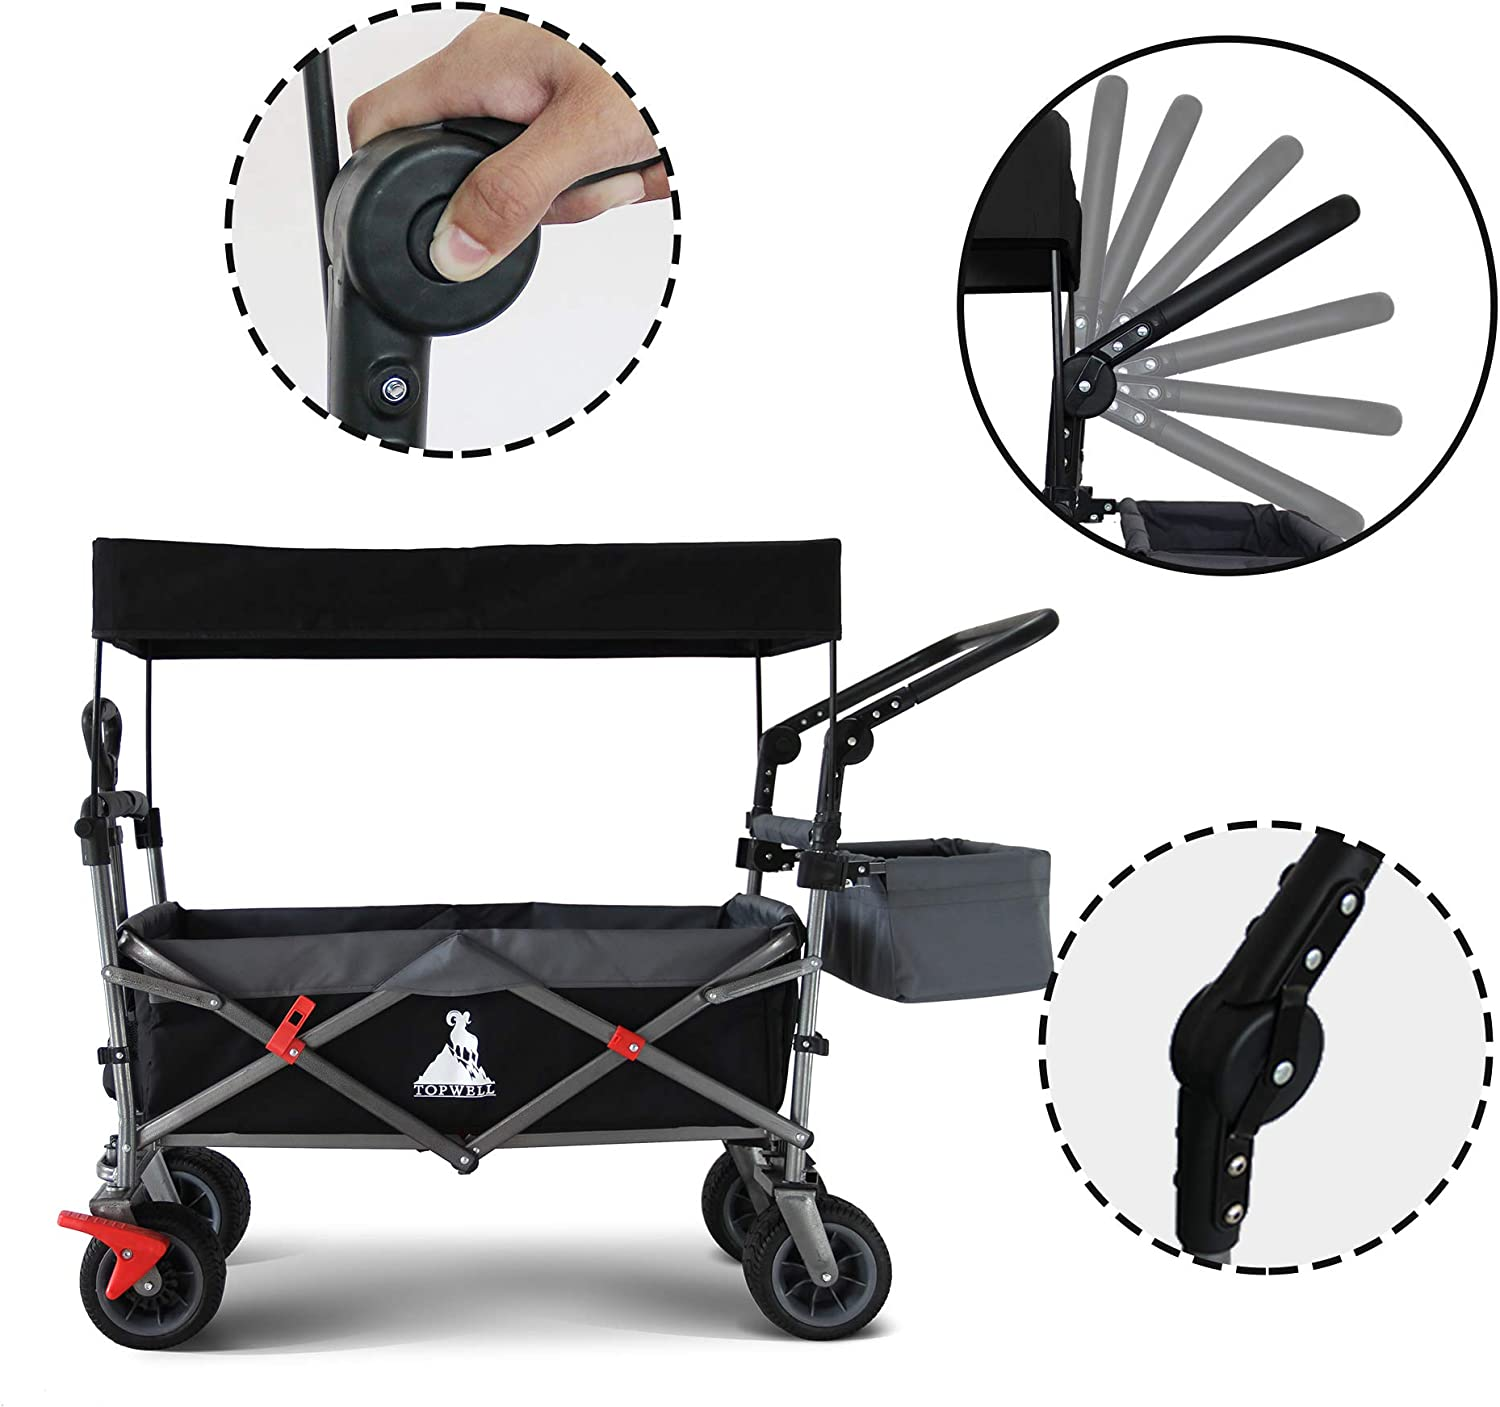 Foldable Handcart Transport Trolley 83 L Foot Brake and Removable Roof 120 kg TOPWELL All-Terrain Folding Trolley with 360/° Wheels Foldable Hand Cart for Children